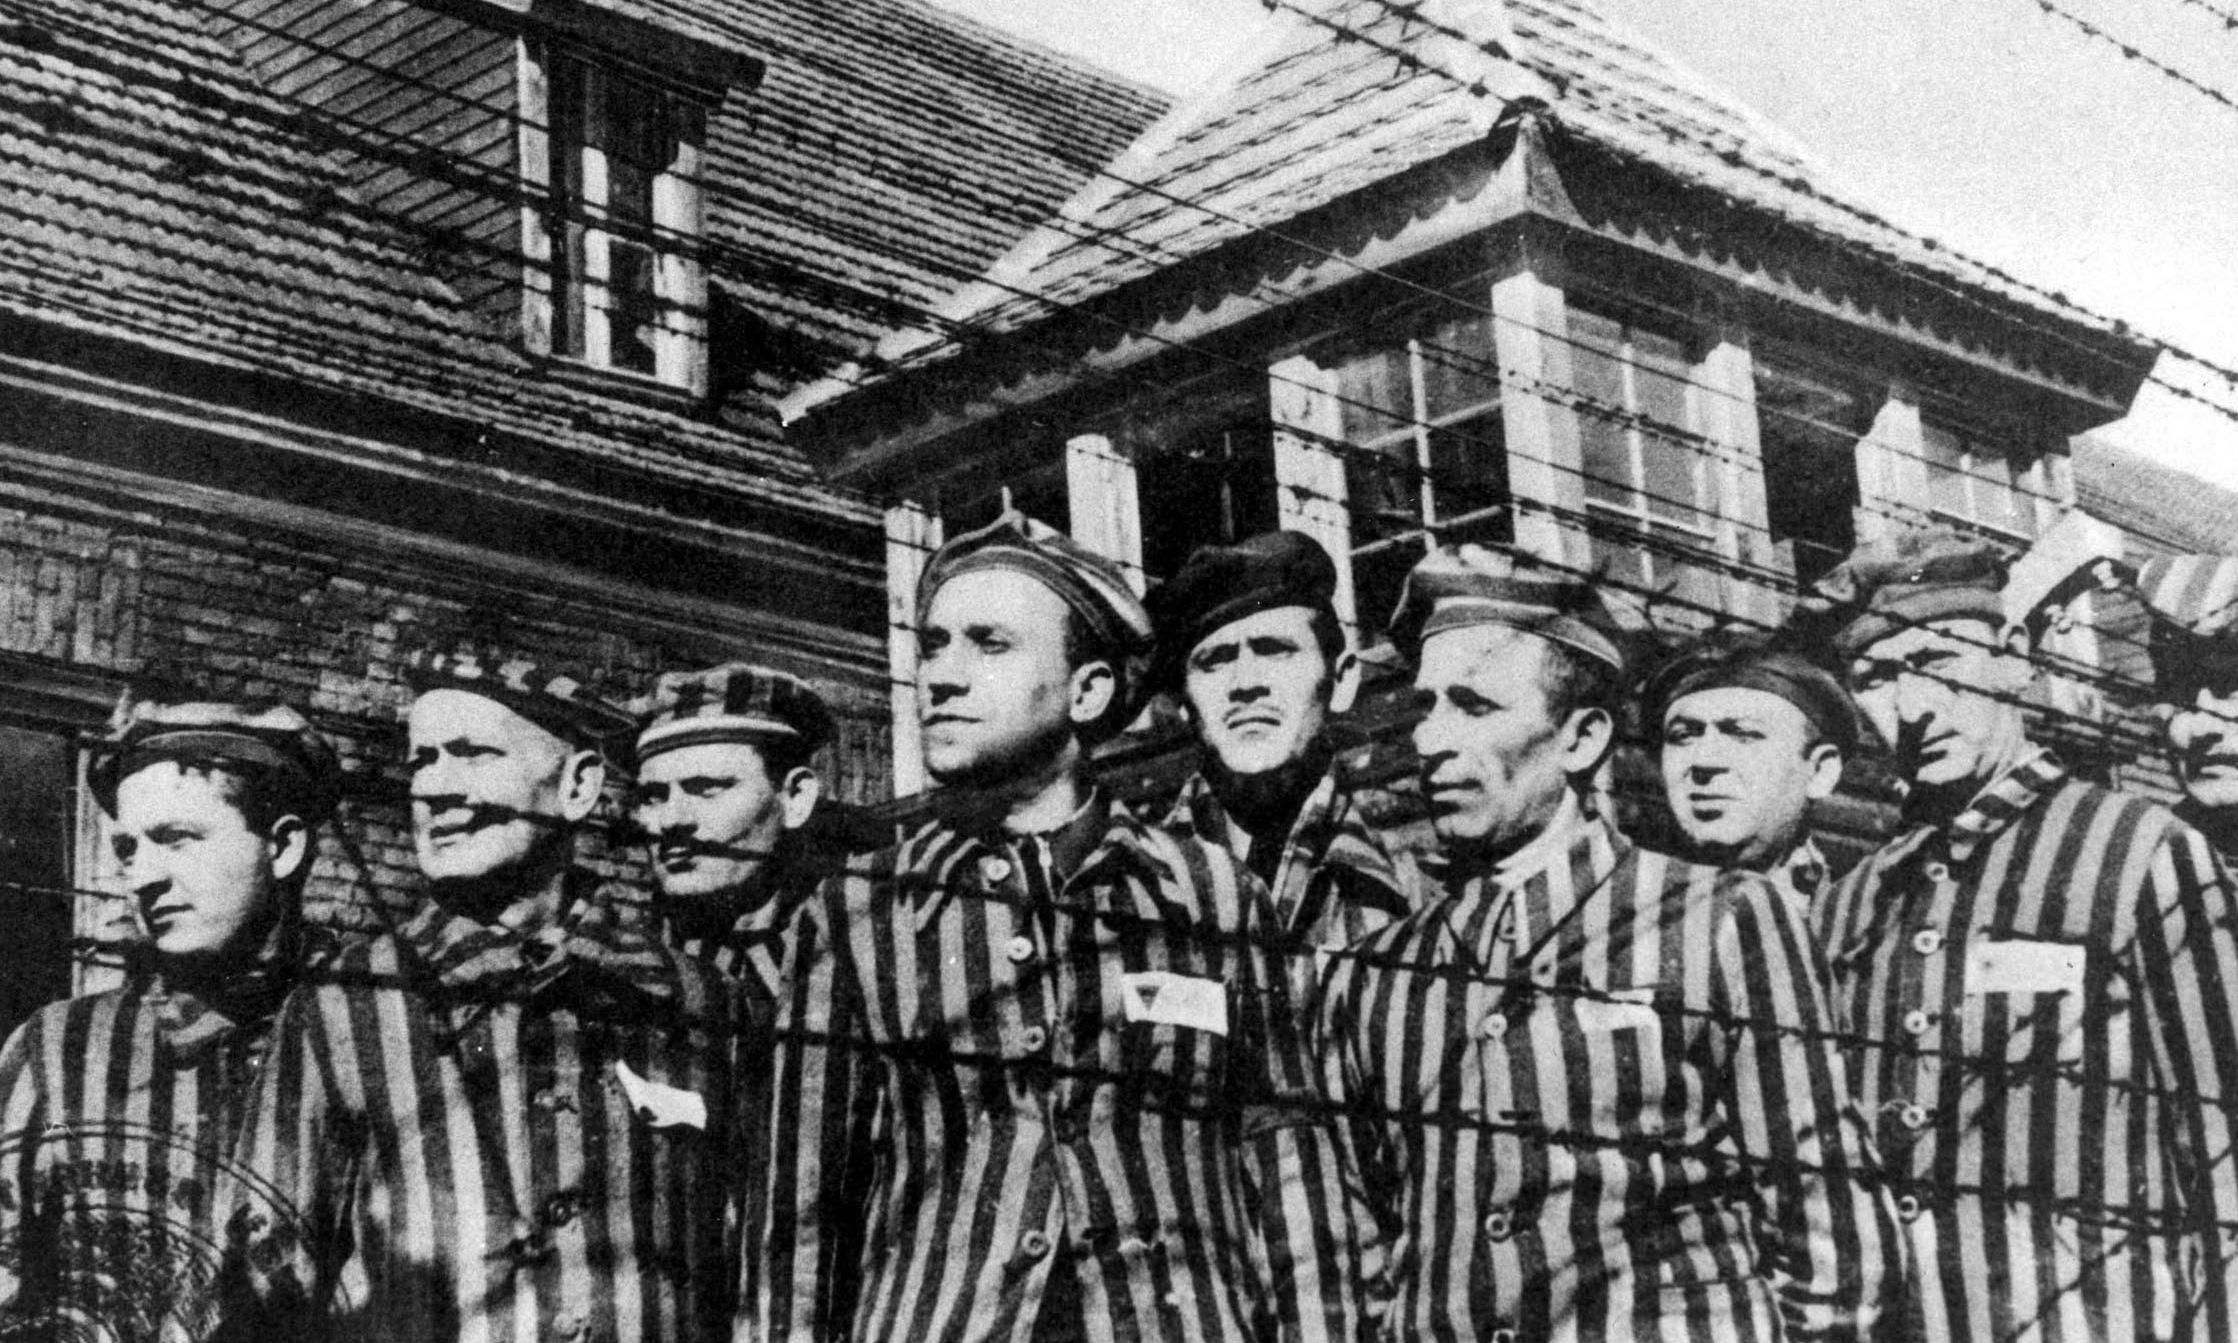 Primo Levi brings readers as close as prose can to the horror of Auschwitz